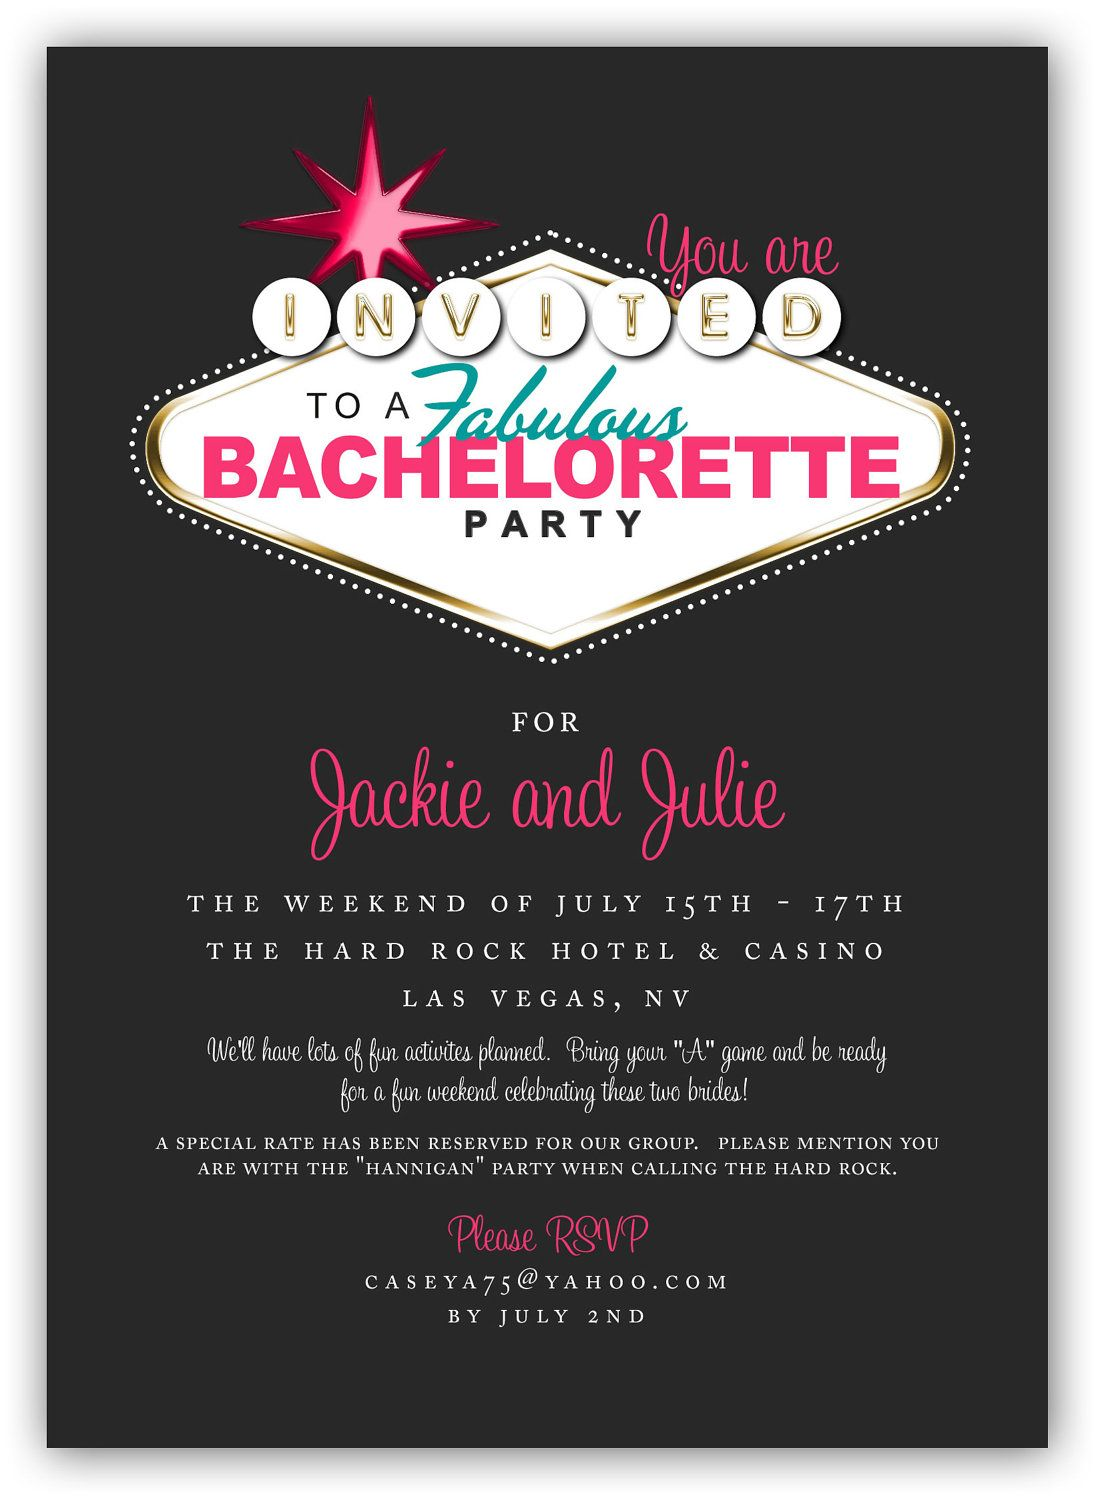 Fabulous Las Vegas Themed Party Invitation (4x6 or 5x7) Digital ...